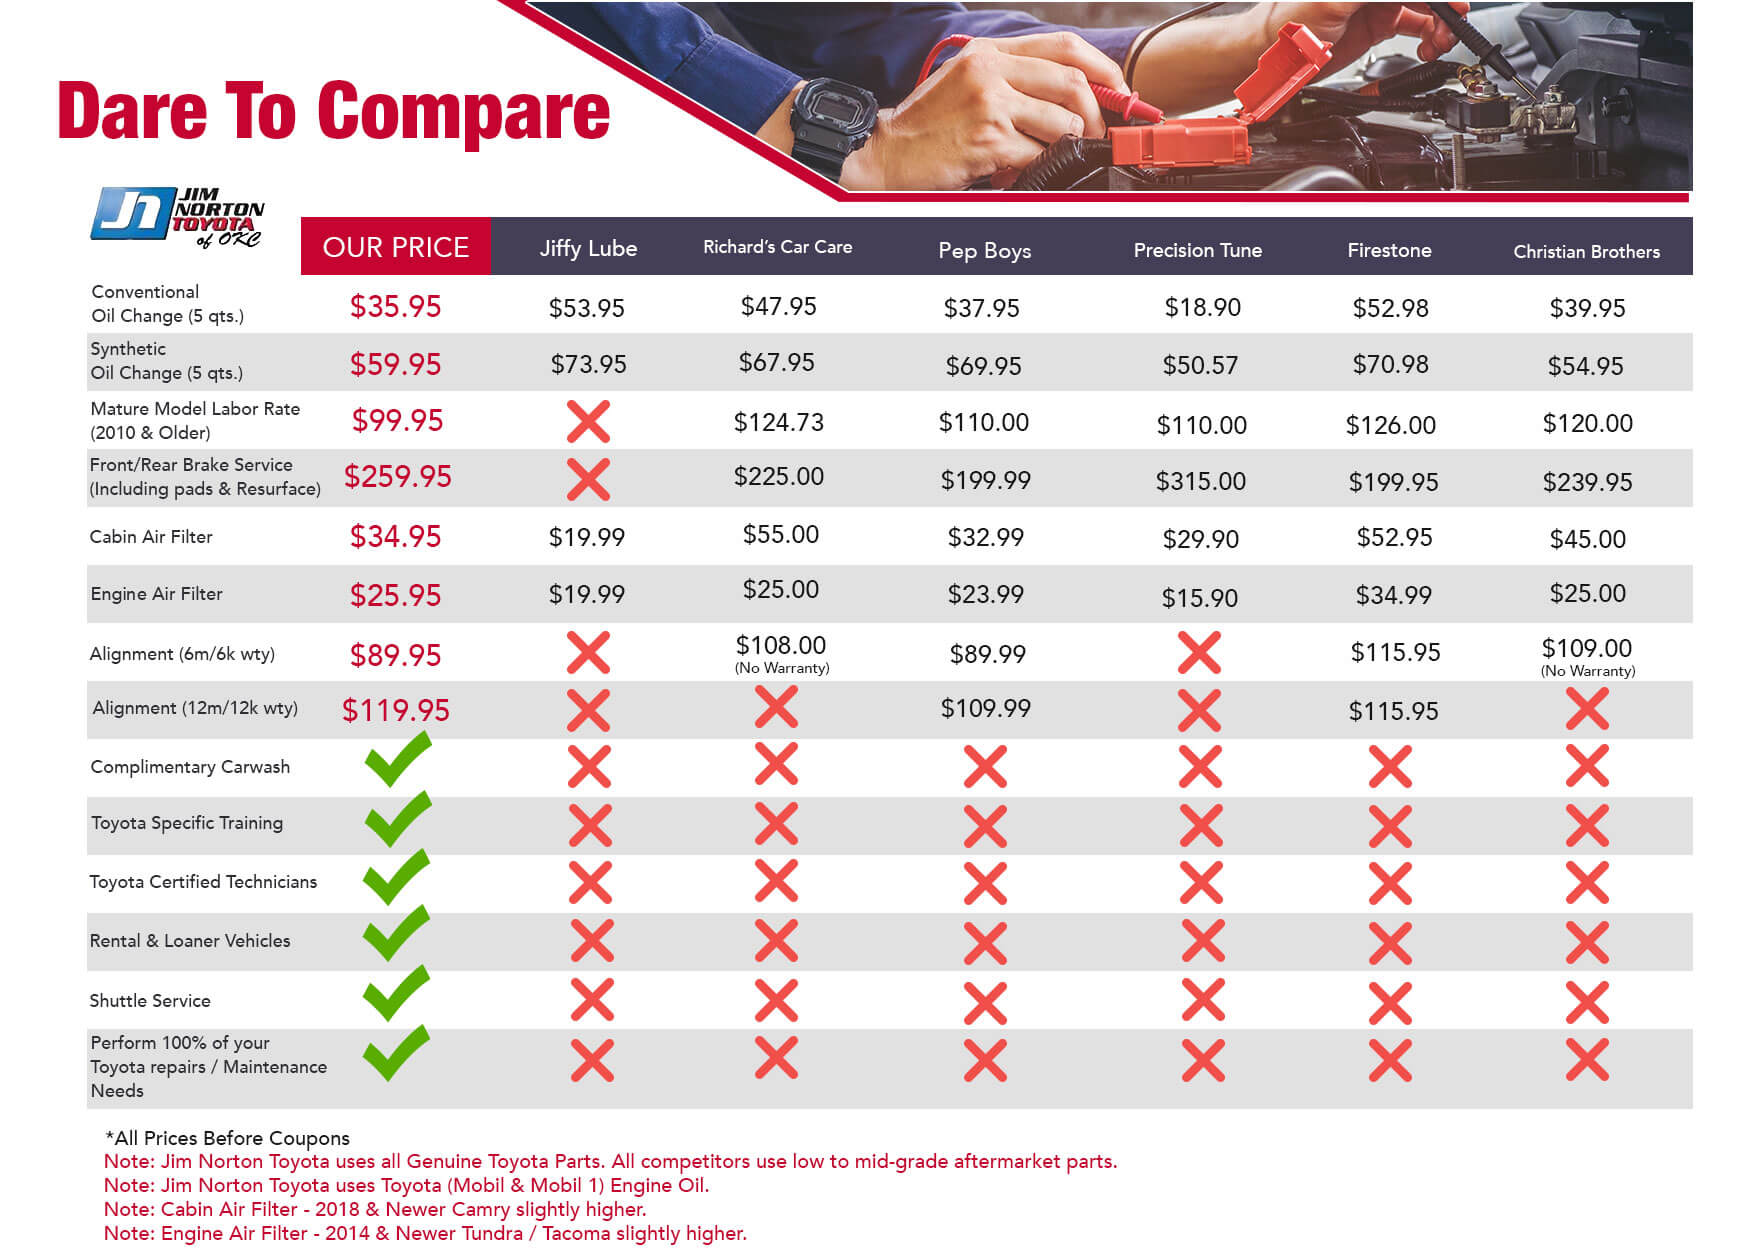 Dare to Compare at Jim Norton Toyota OKC